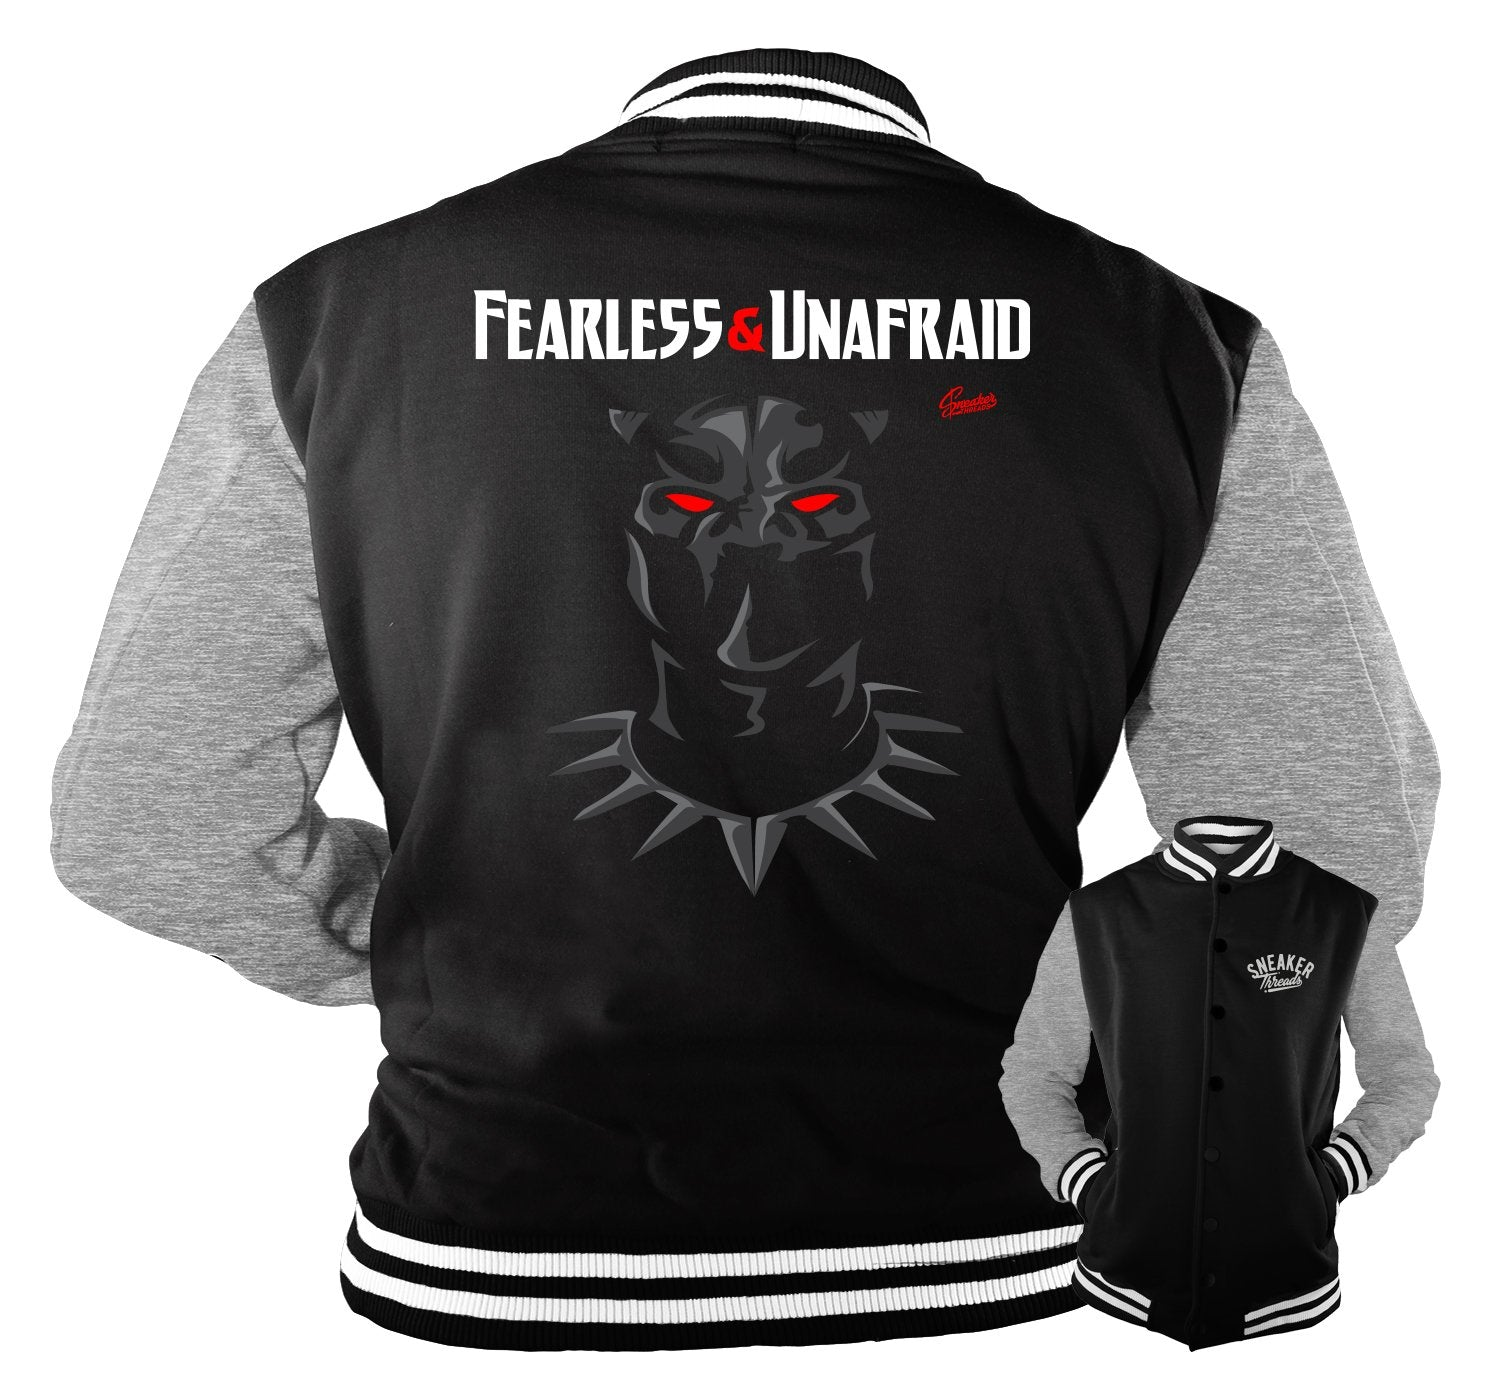 Sneaker Jordan 4 black cat matching jackets for men